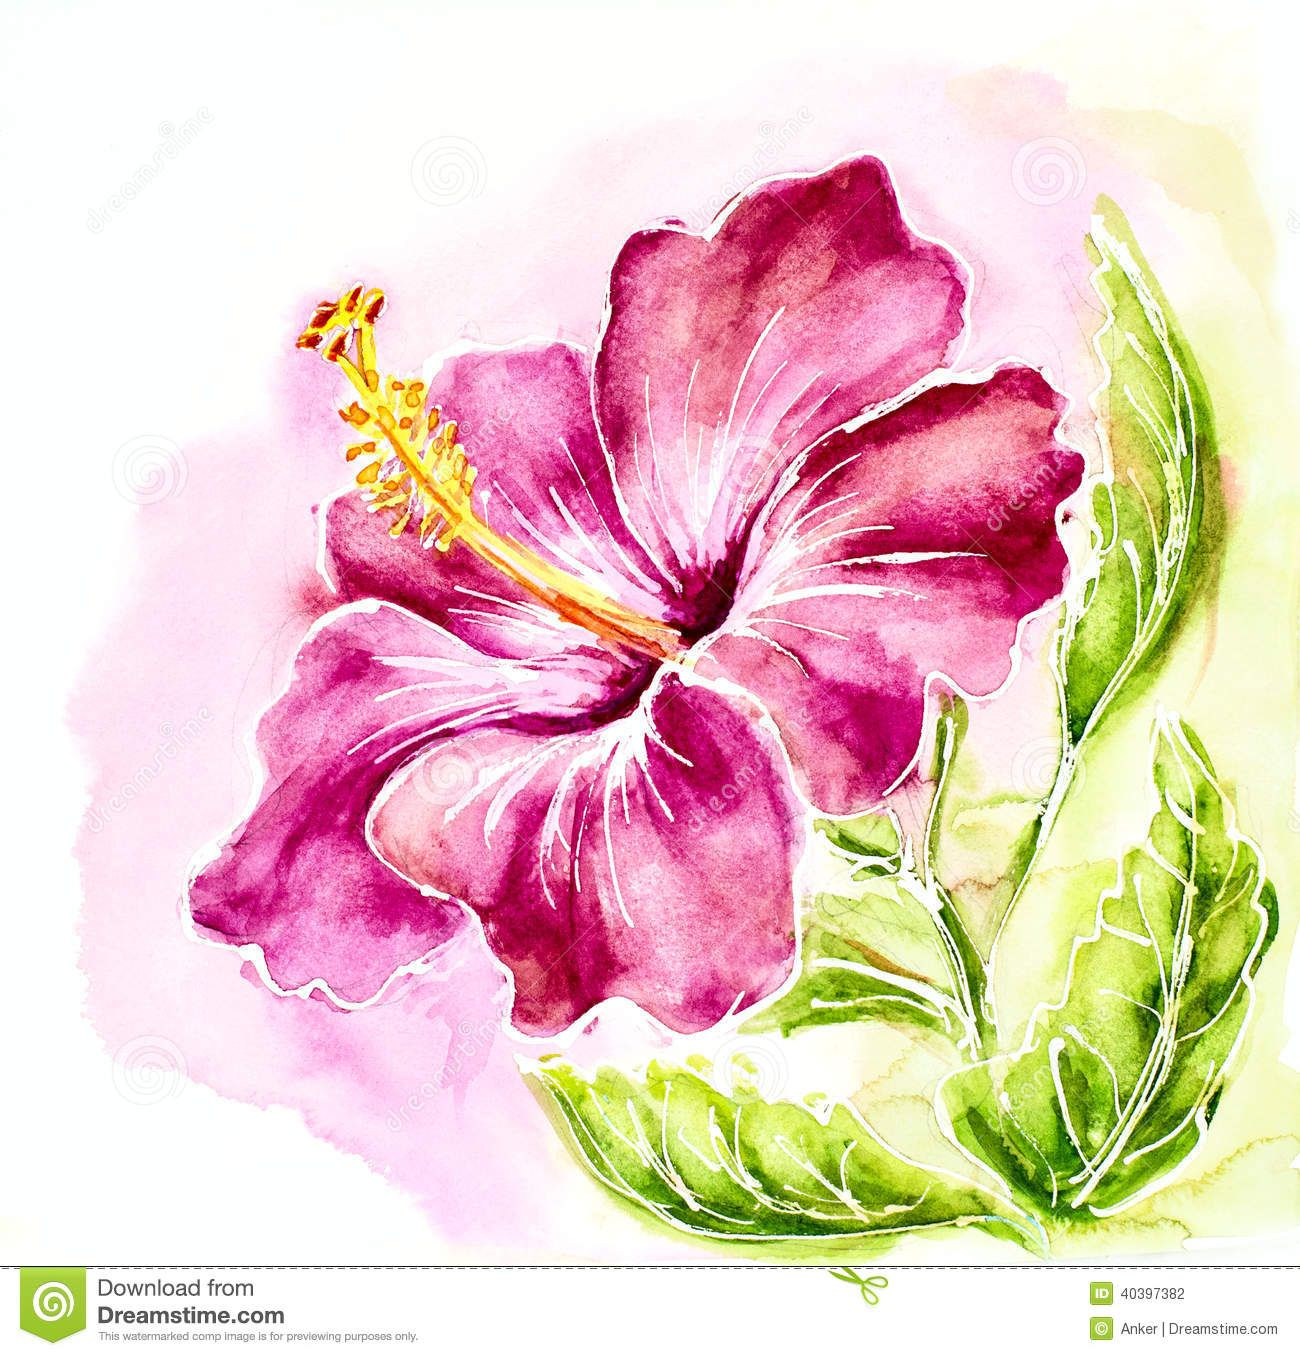 Hibiscus With Images Watercolor Paintings Watercolor Flowers